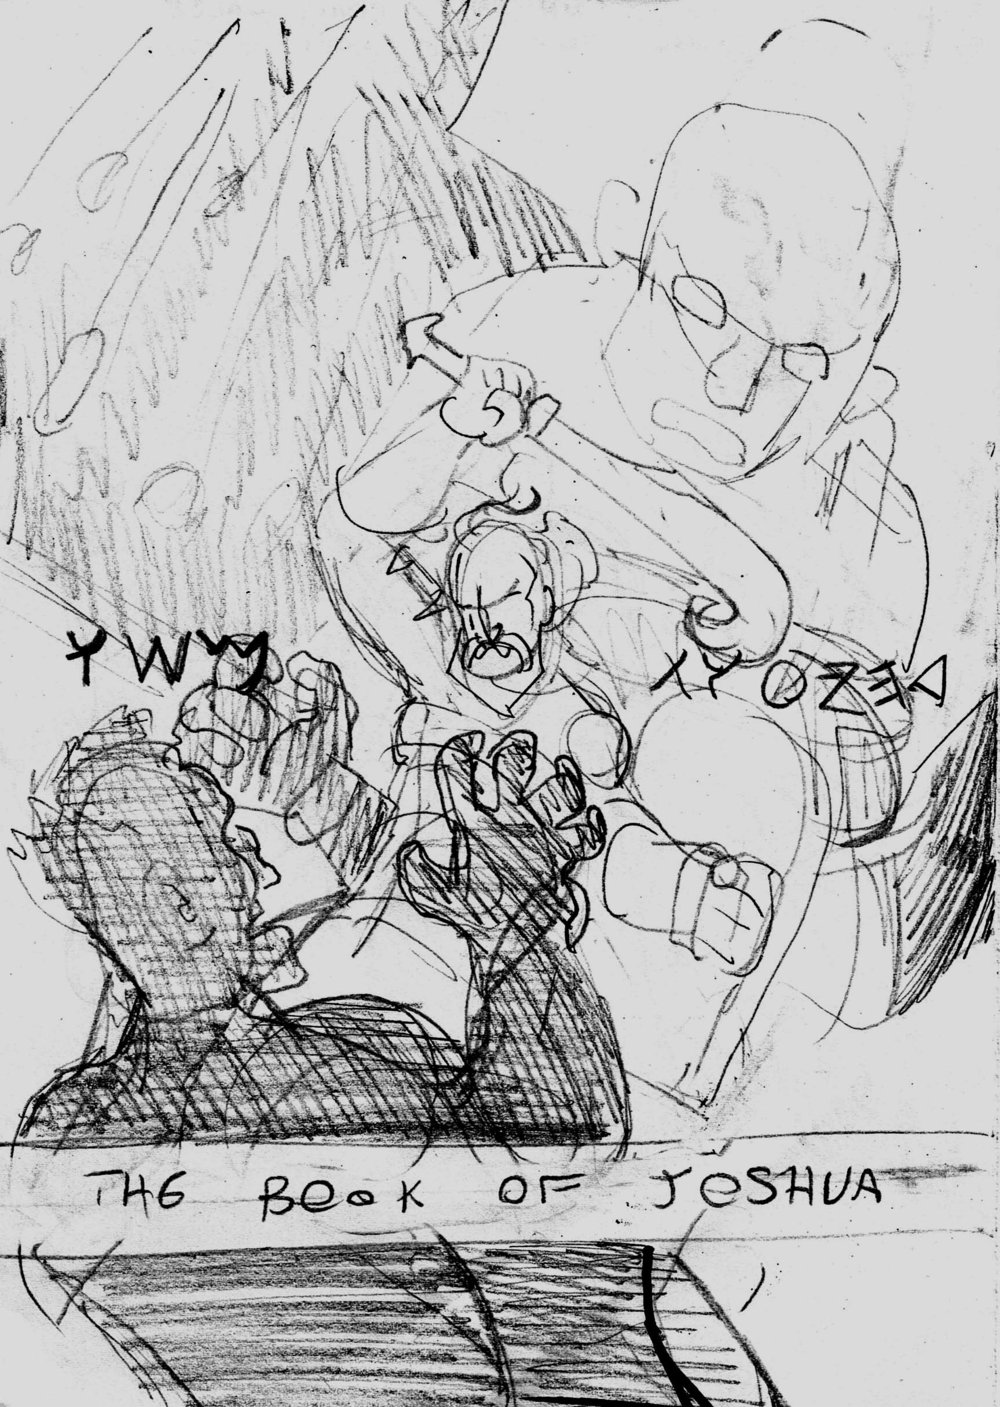 Early idea, Joshua fights Anakim